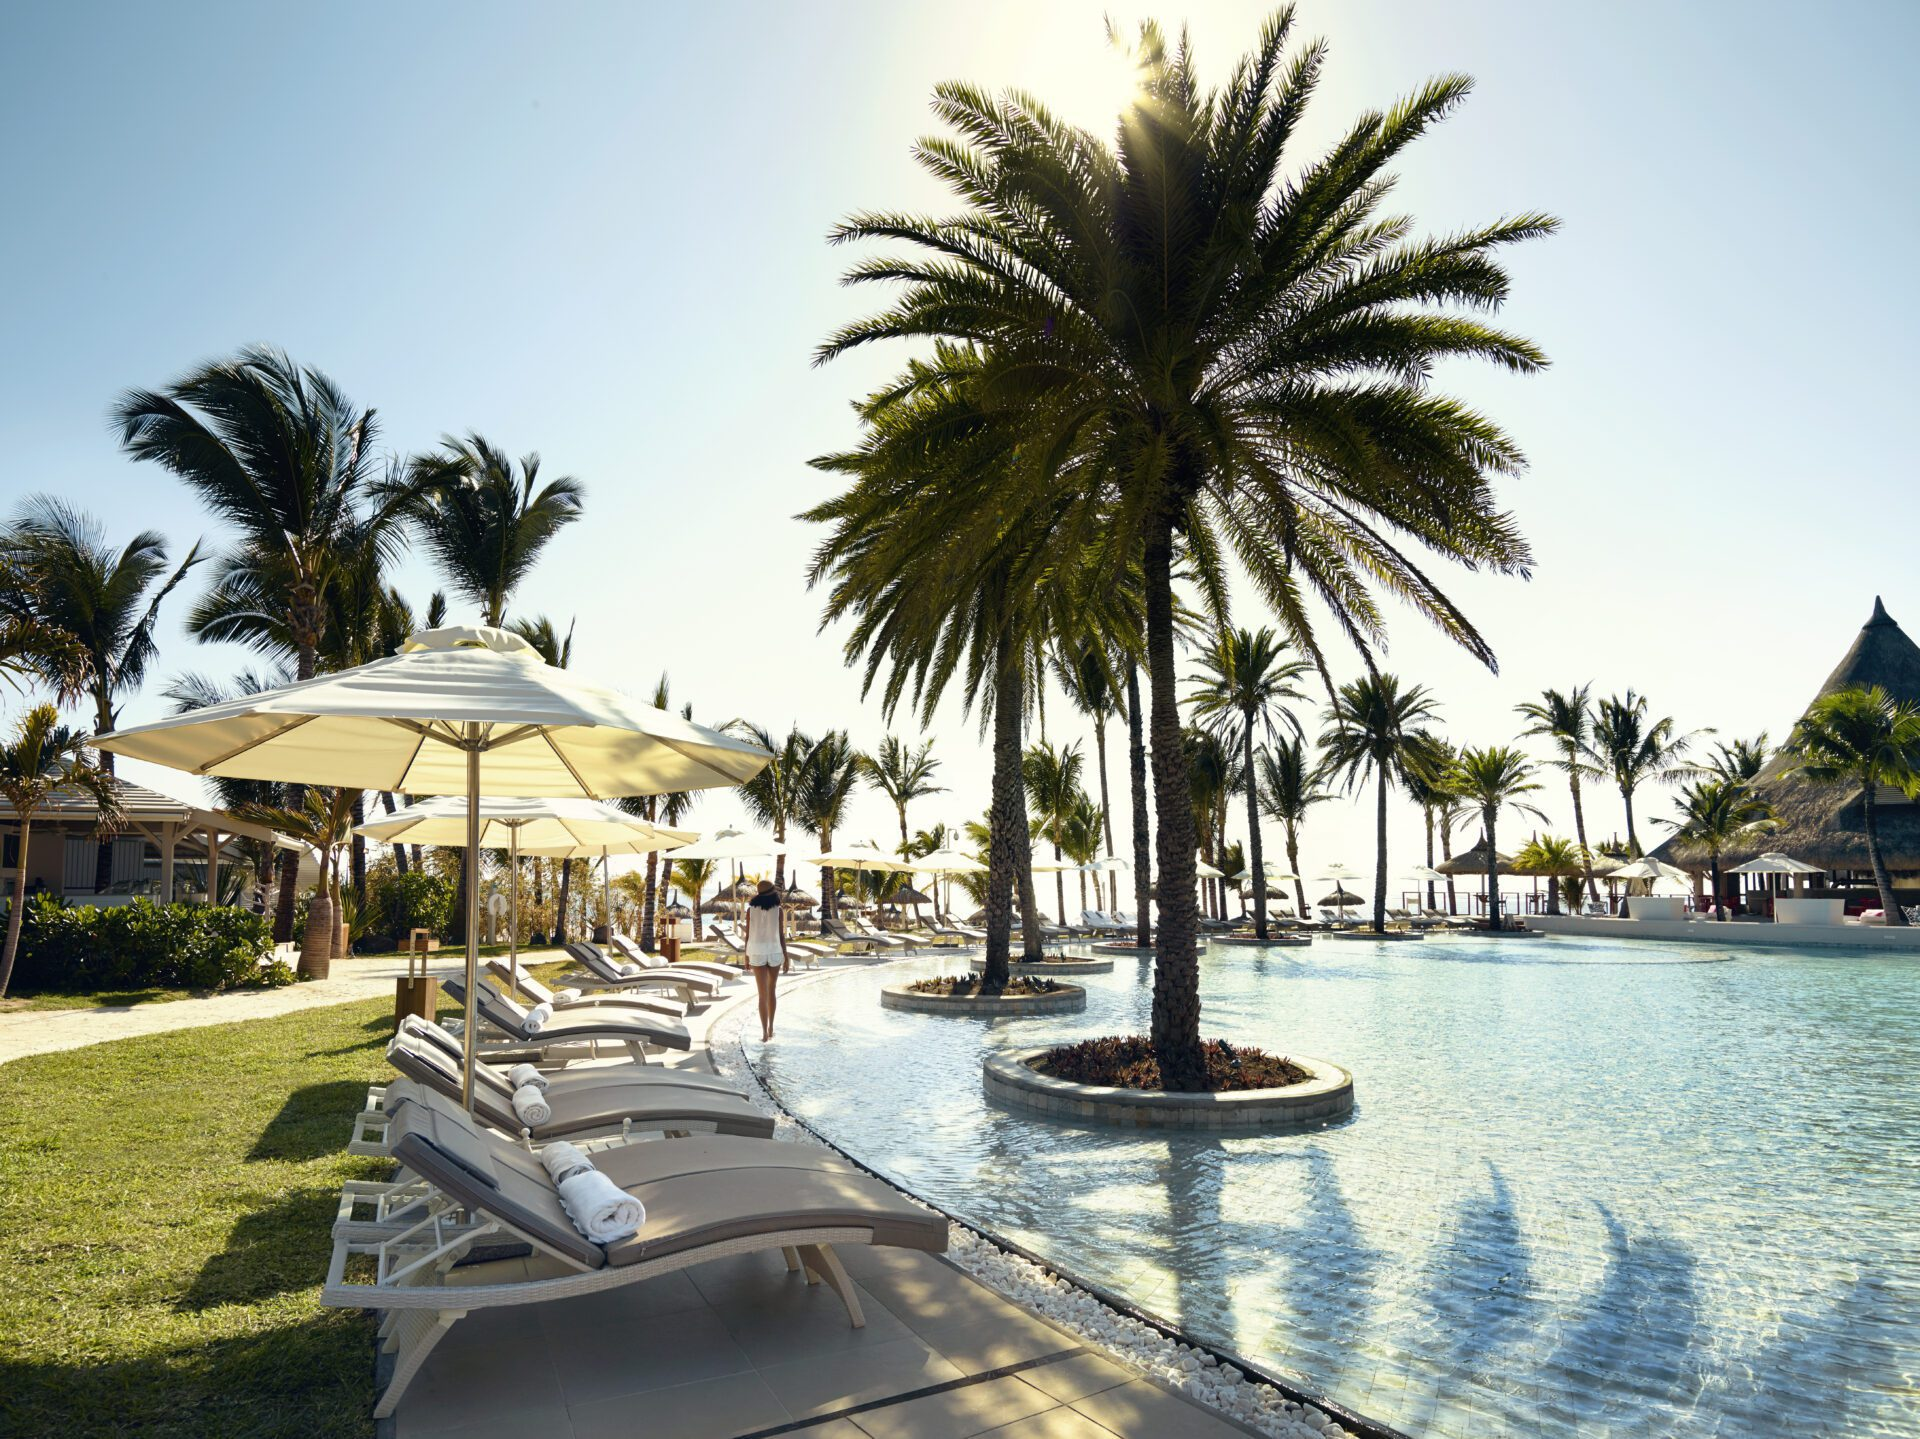 Lux Belle Mar pool and grounds in Mauritius